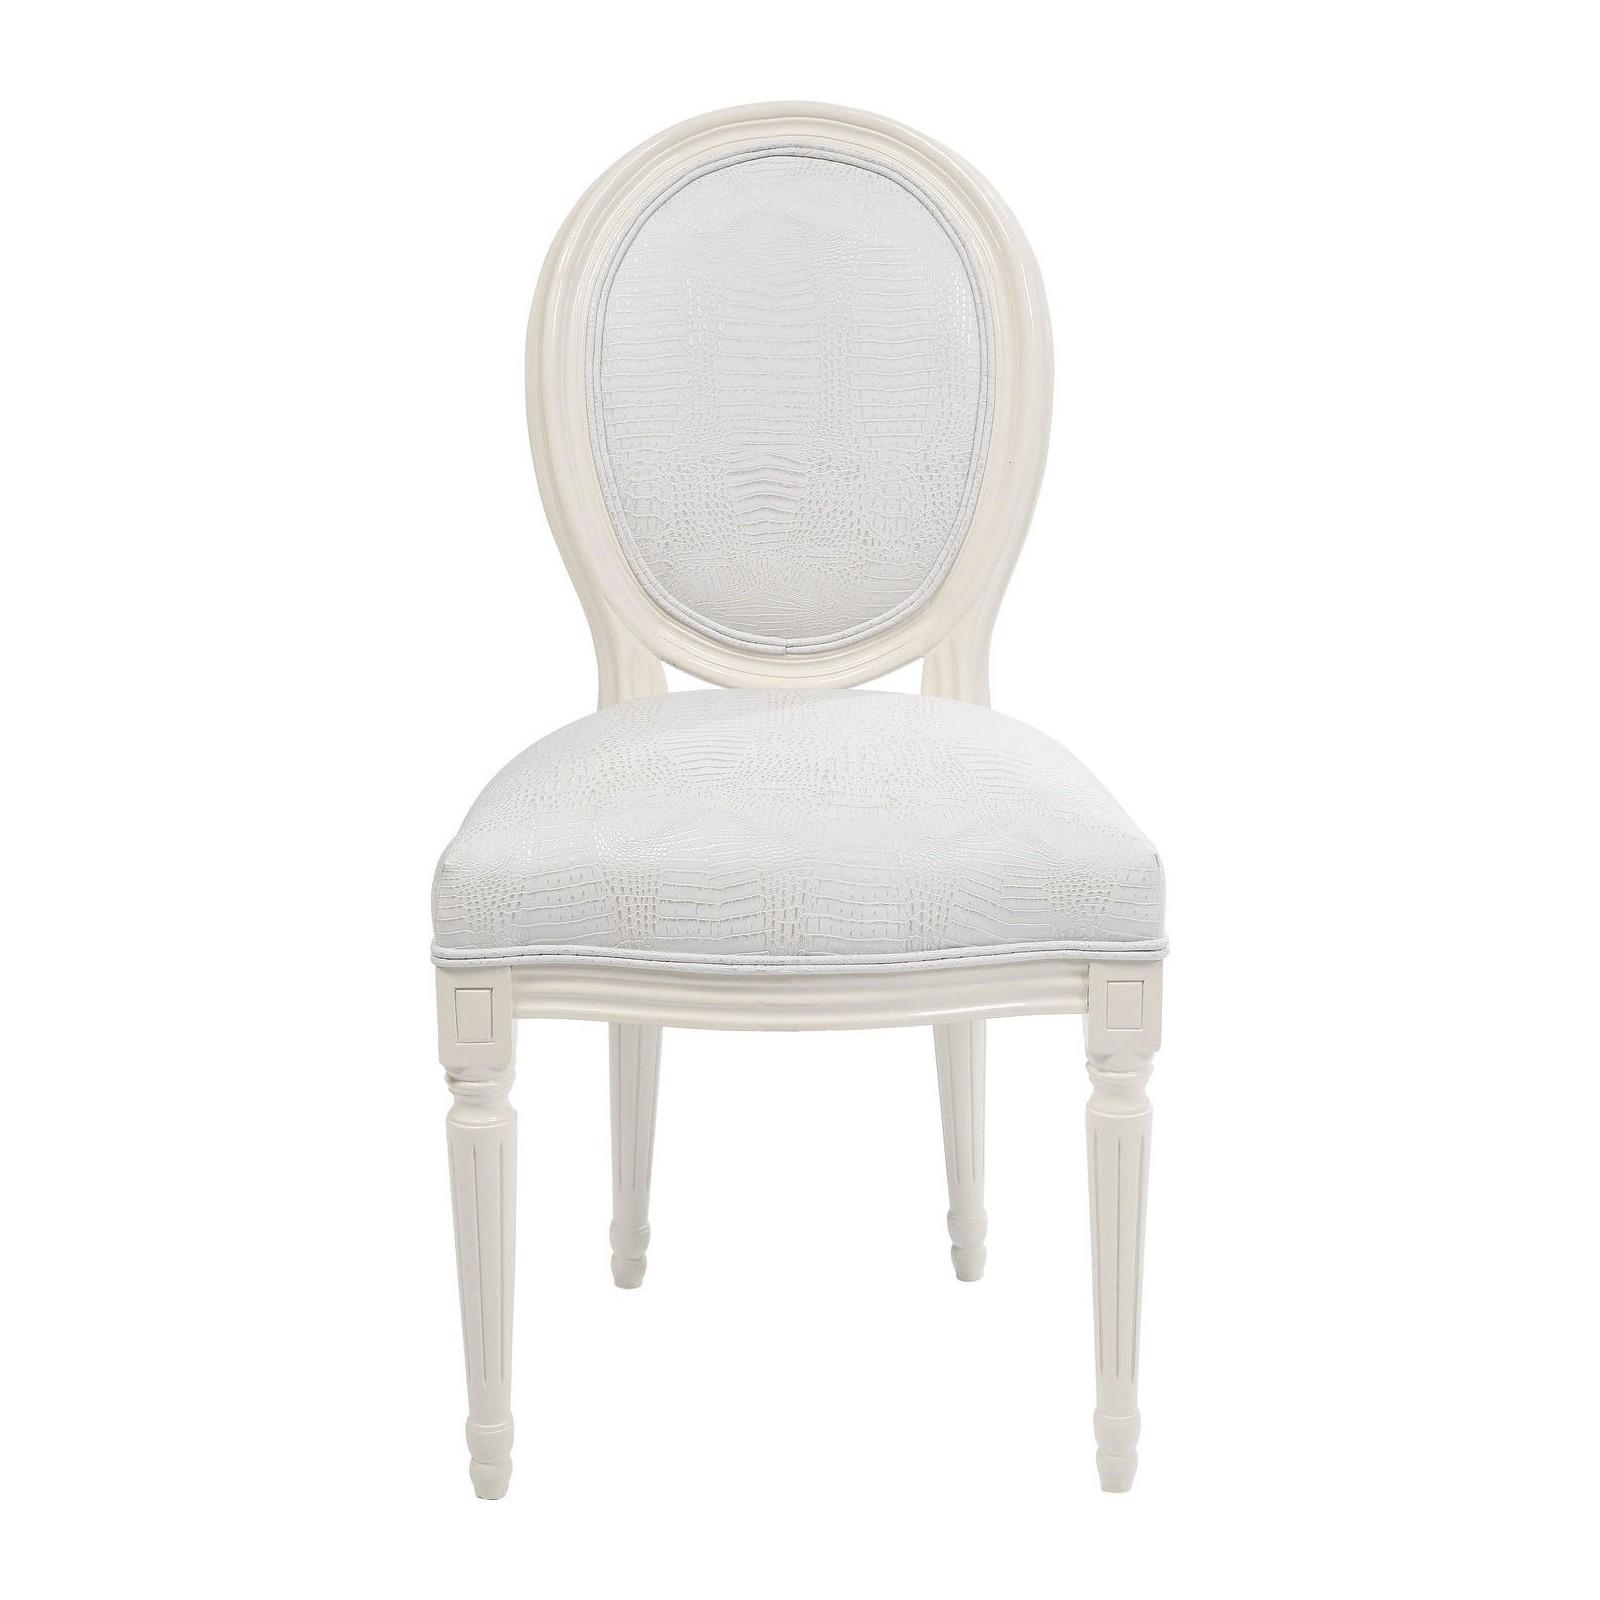 Chaise baroque blanche louis kare design for Chaise simili cuir blanche